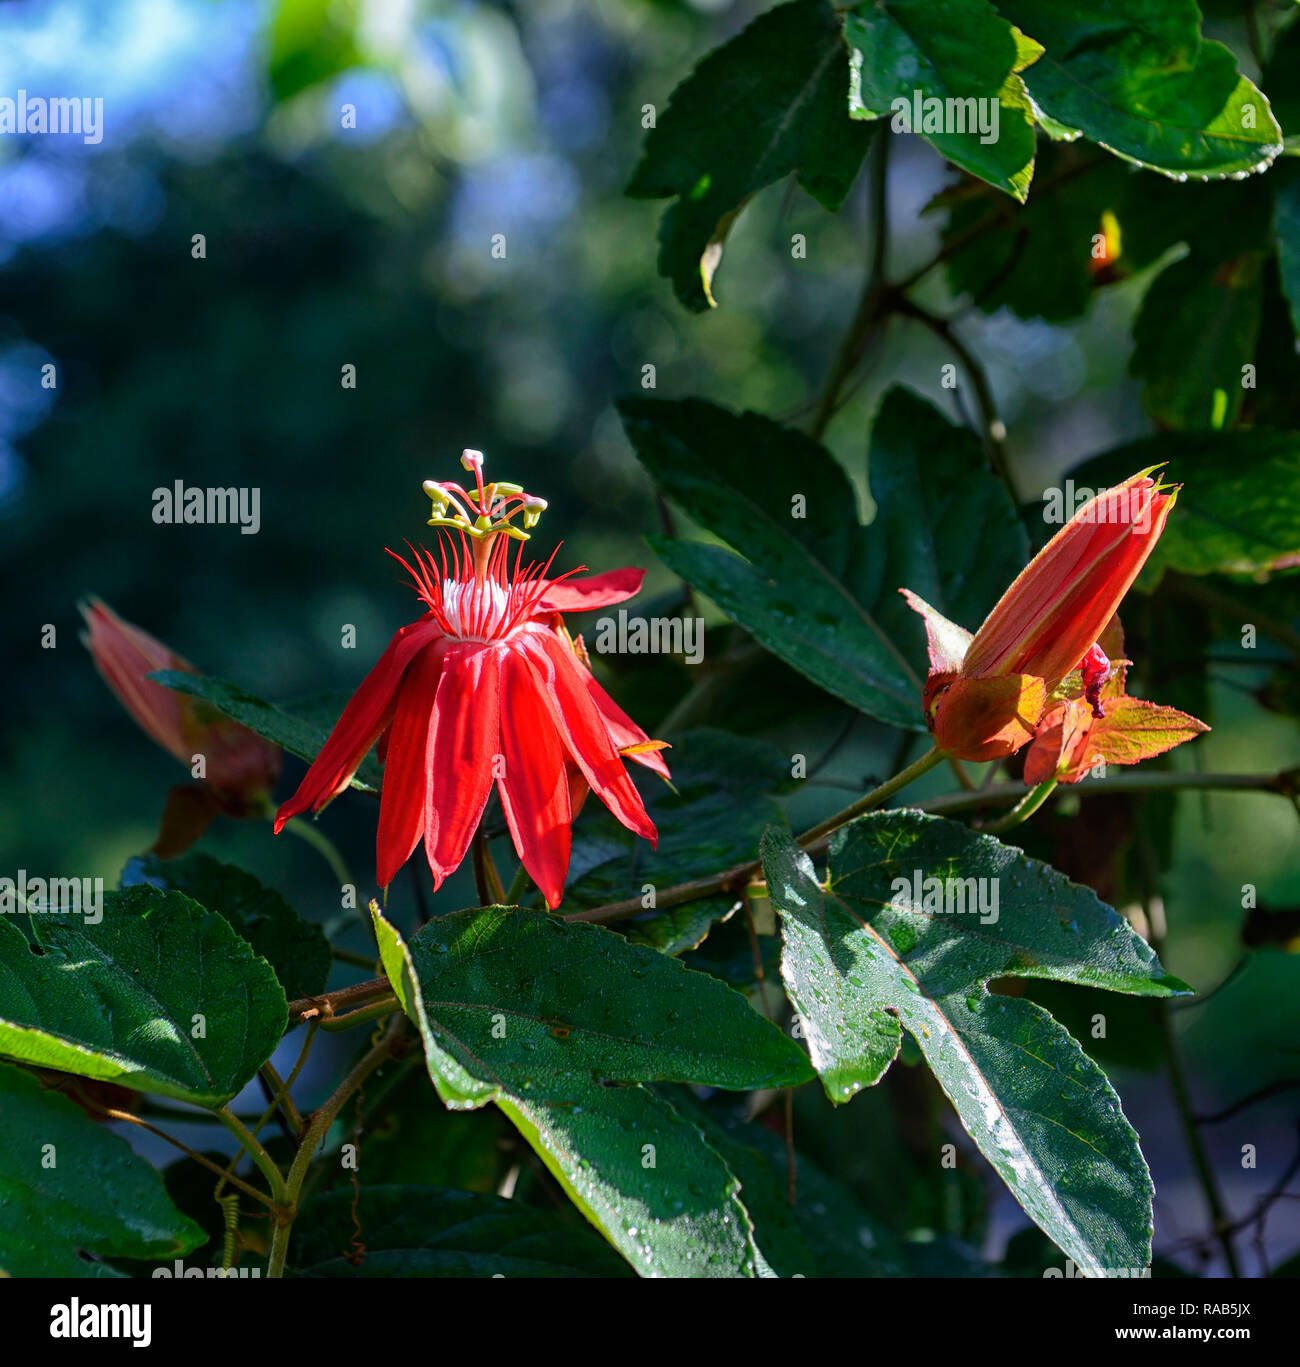 Passiflora Vitifolia Perfumed Passionflower Bright Red Flowers Red Flower Flowers Vine Climber Climbing Vines Creeper Creepers Plant Plants Rm Floral Stock Photo Alamy